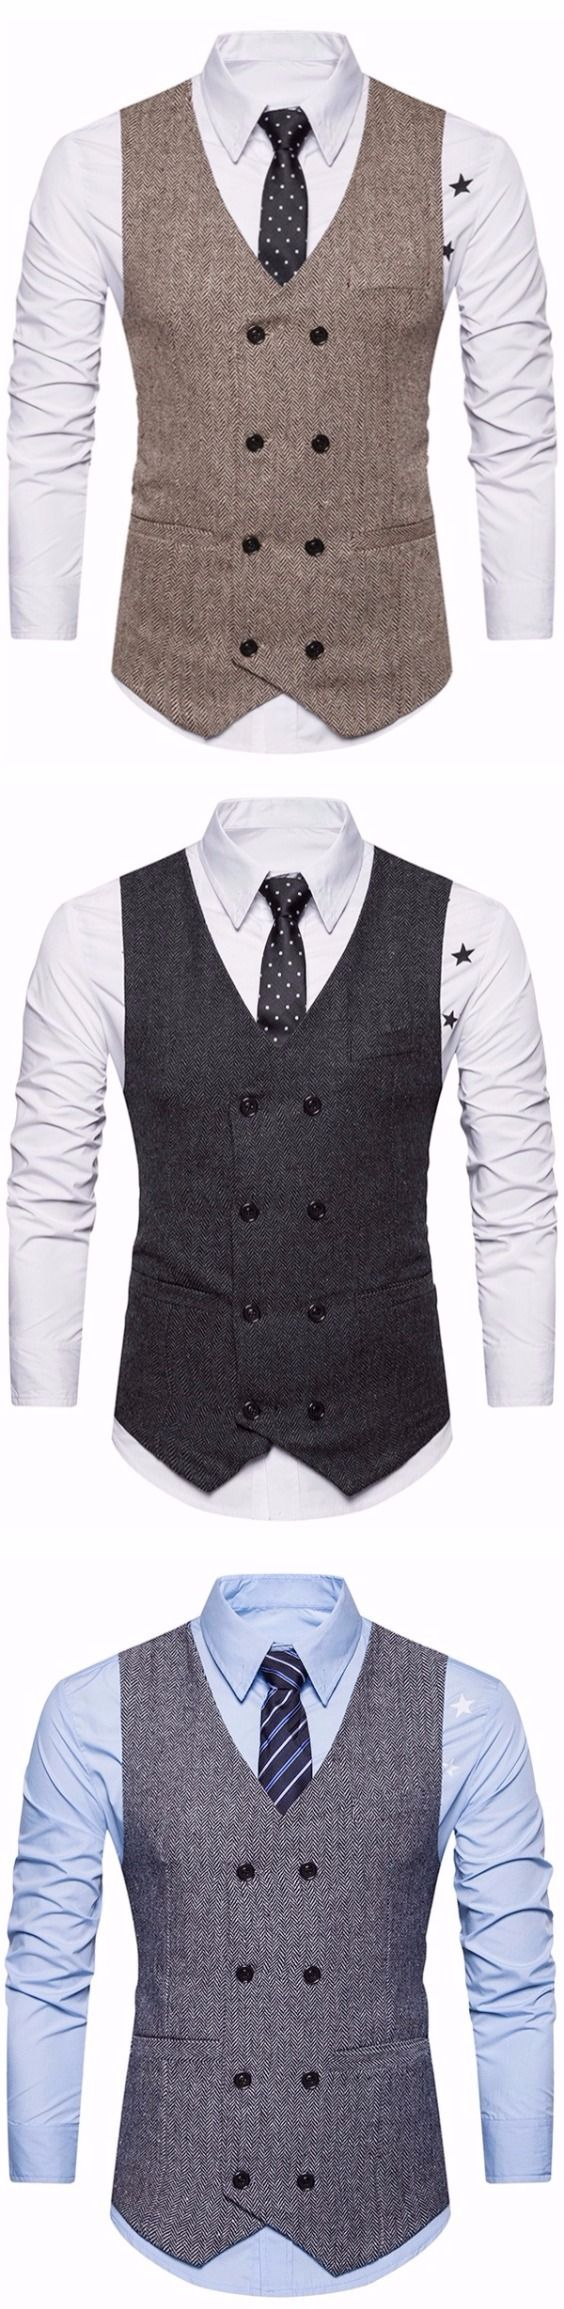 V Neck Double Breasted Belt Design Waistcoat - US Trailer can buy used trailers in any condition to or from you. Contact USTrailer and let us repair your trailer. Click to http://USTrailer.com or Call 816-795-8484